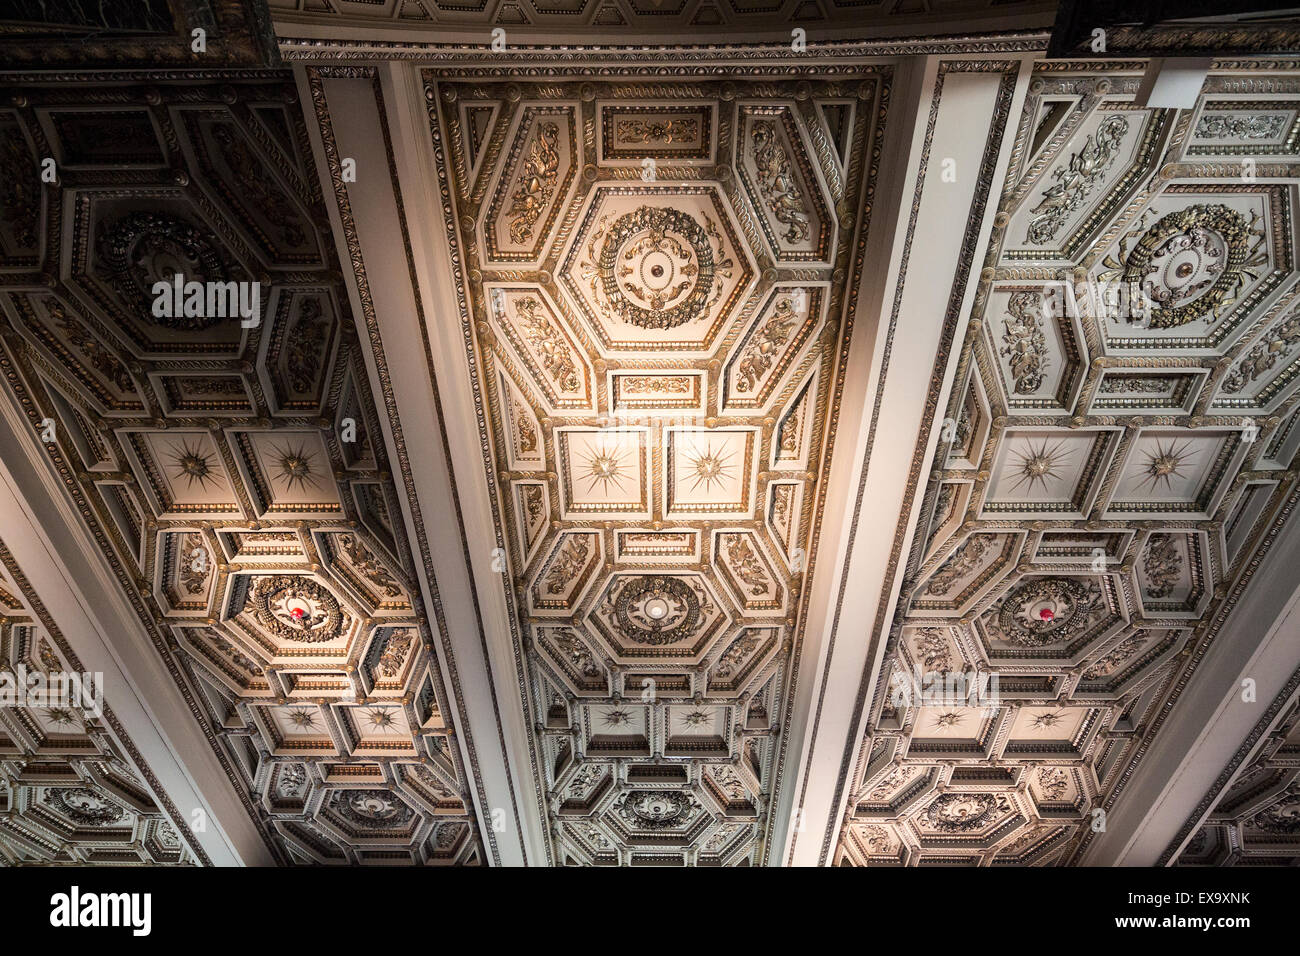 detail of ceiling decoration, Chicago Cultural Center, formerly the Chicago Public Library, Chicago, Illinois, USA - Stock Image